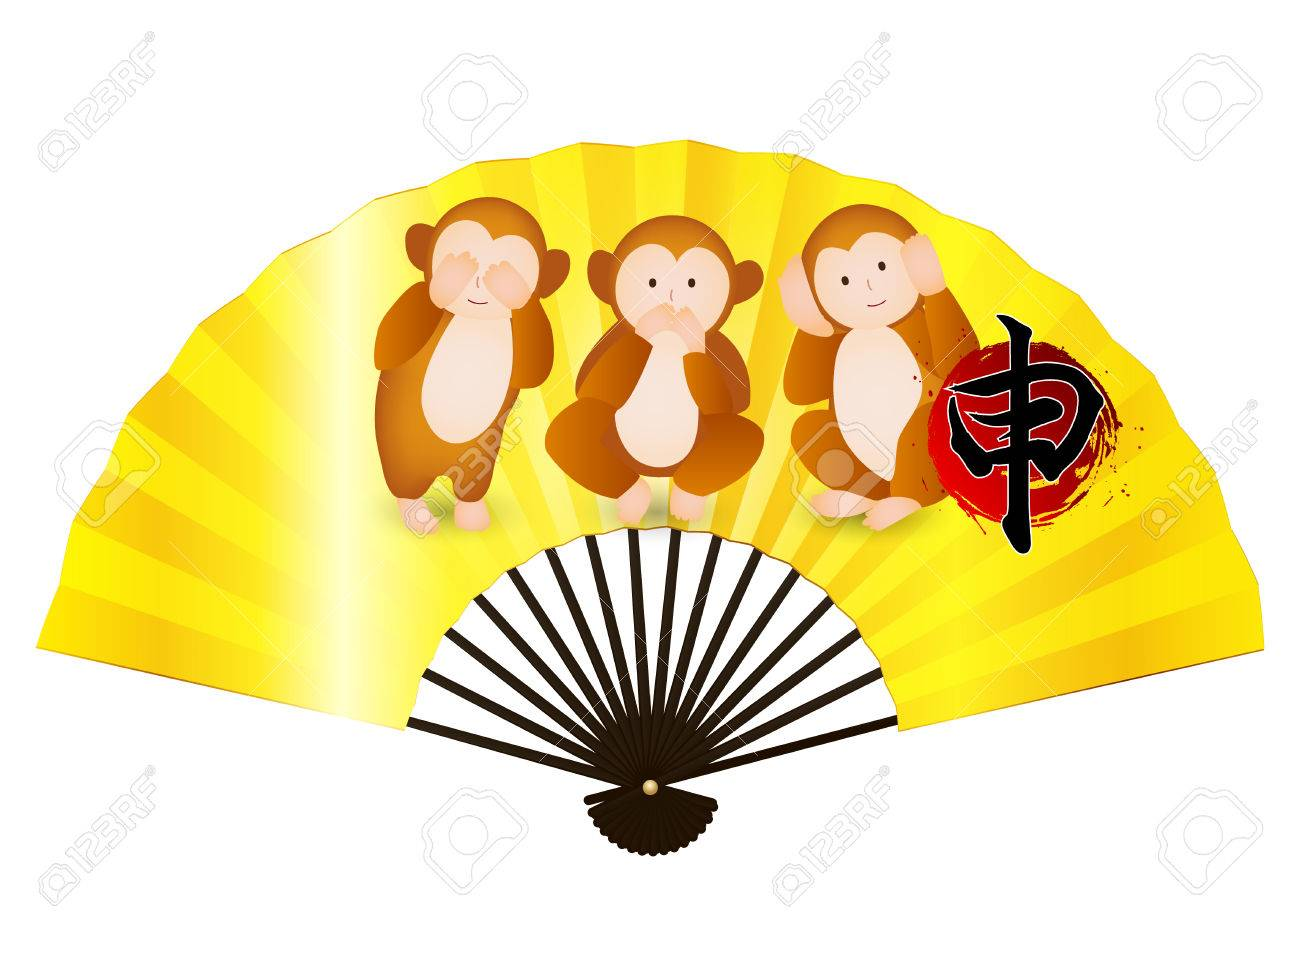 Monkey Fan Greeting Cards Royalty Free Cliparts Vectors And Stock